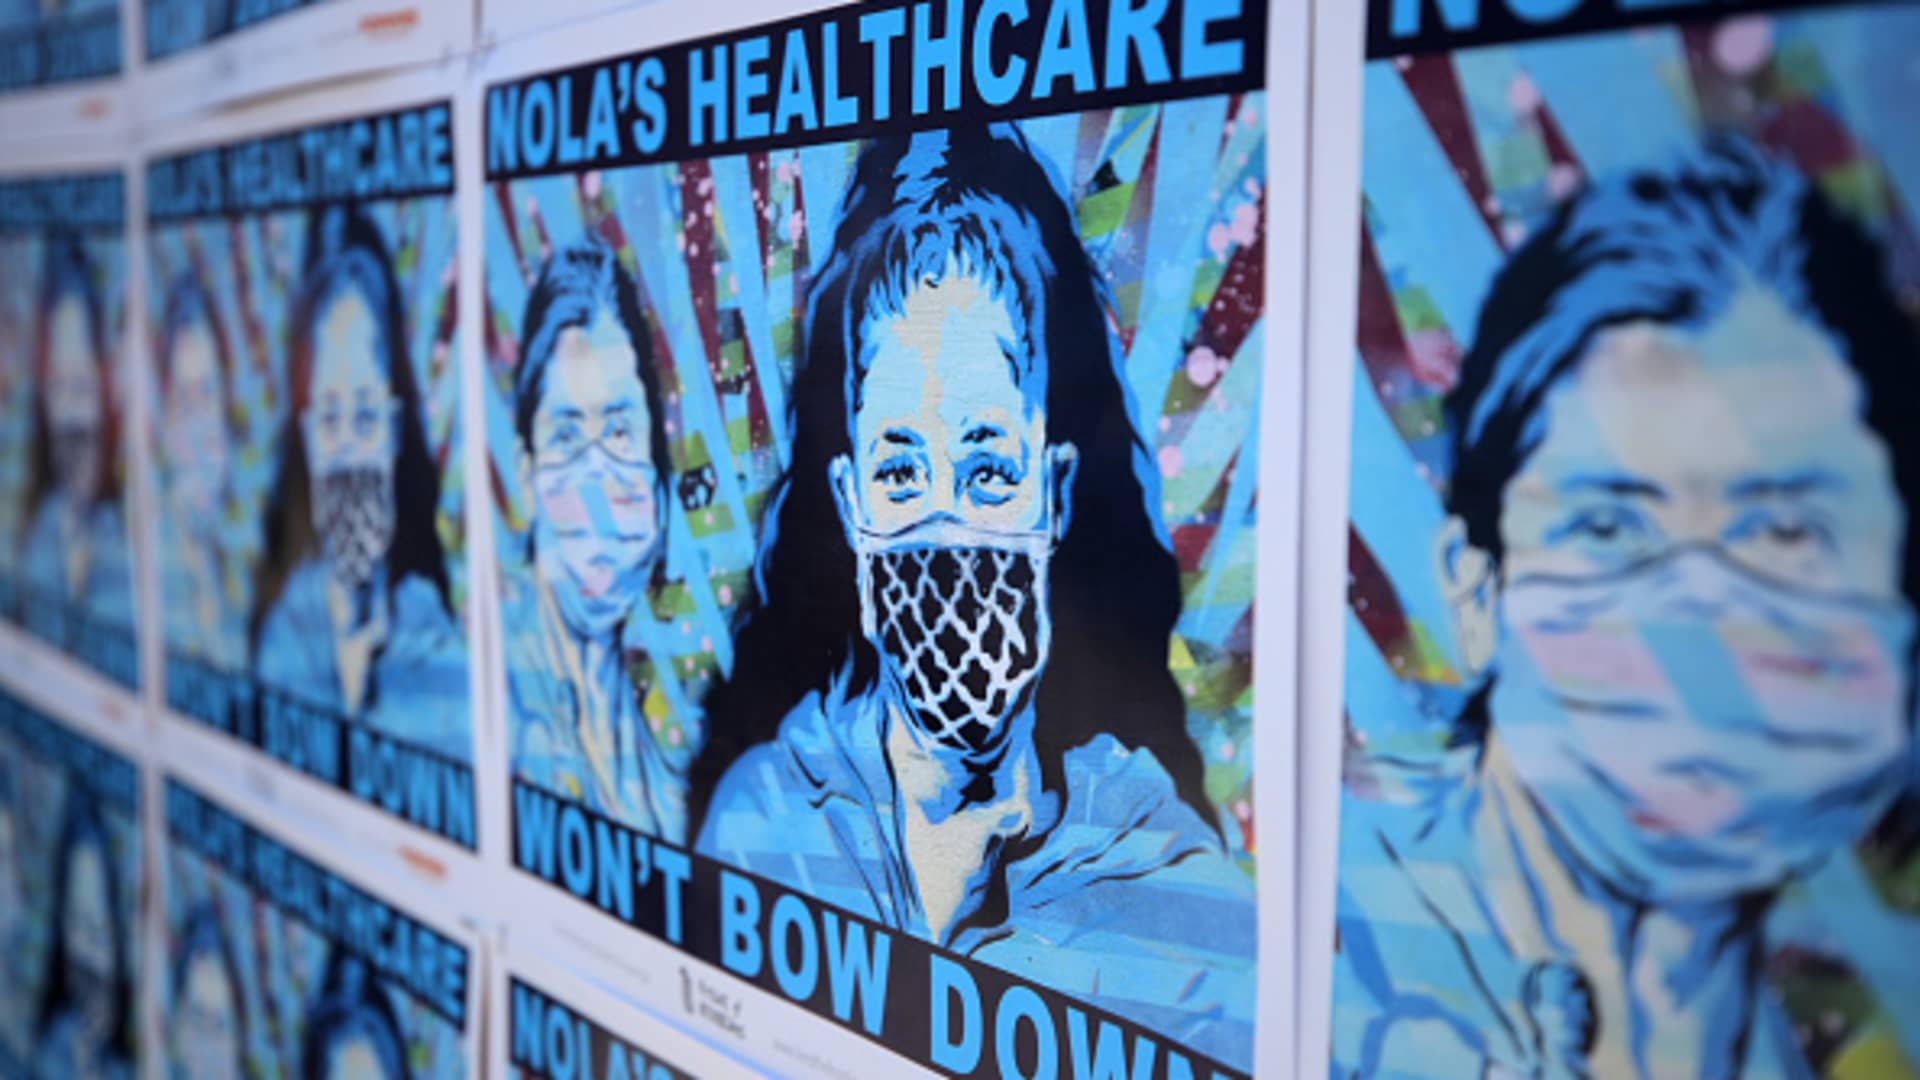 A poster for New Orleans healthcare workers is seen with the slogan 'Won't Bow Down' on Frenchmen Street on April 24, 2020 in New Orleans, Louisiana.